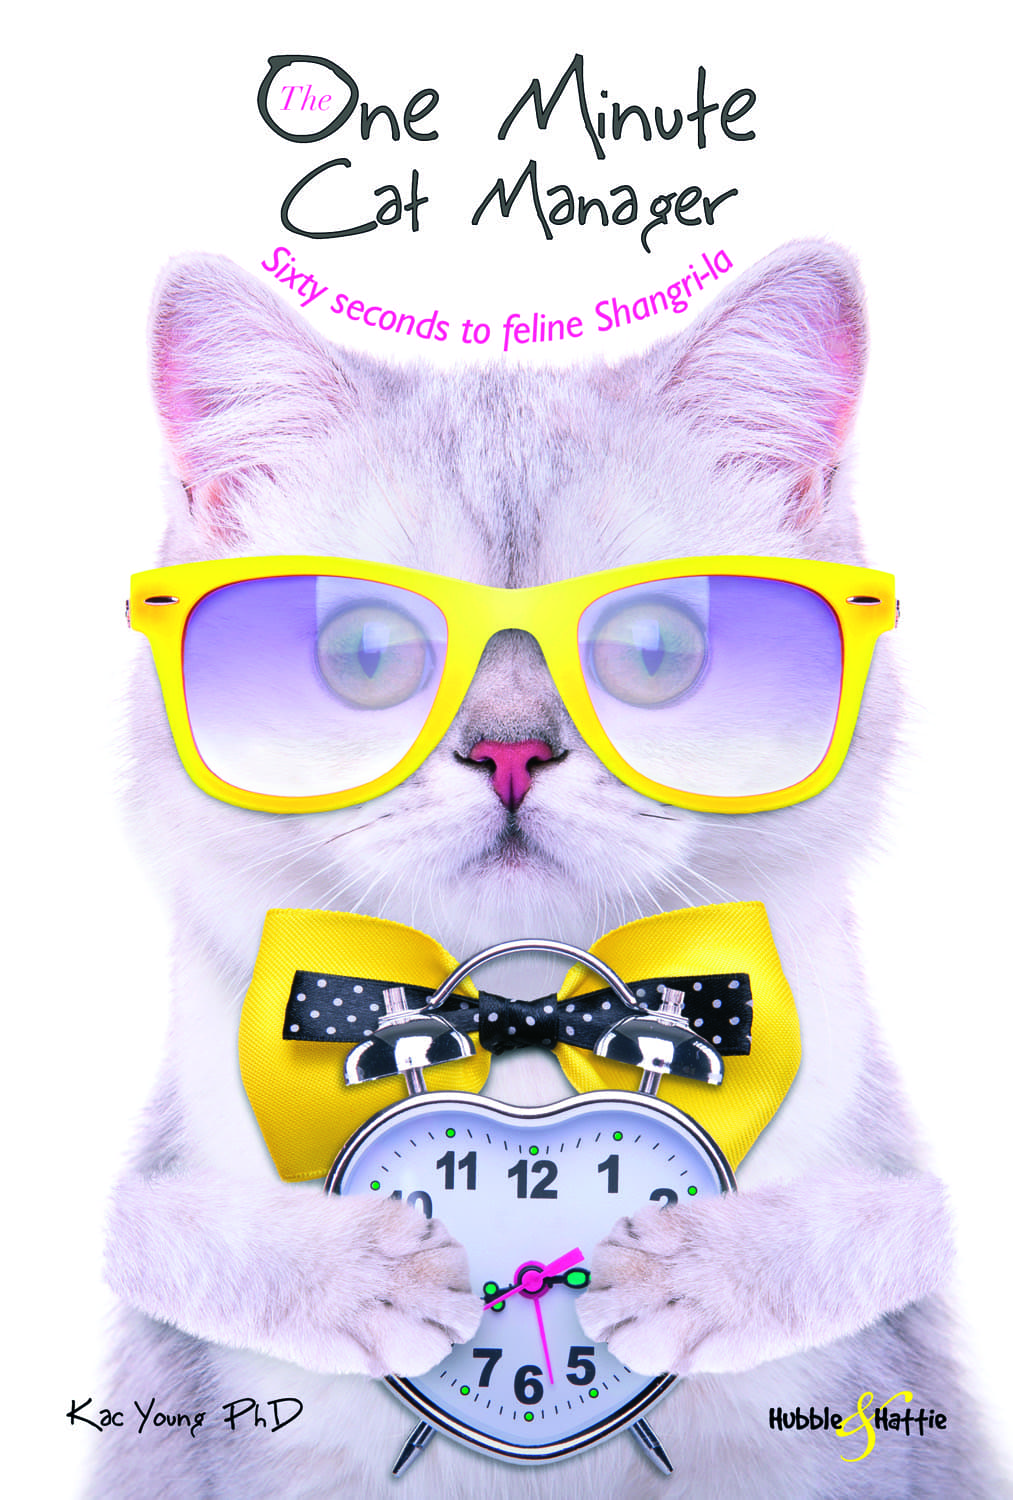 The One Minute Cat Manager – Sixty seconds to feline Shangri-la Cover